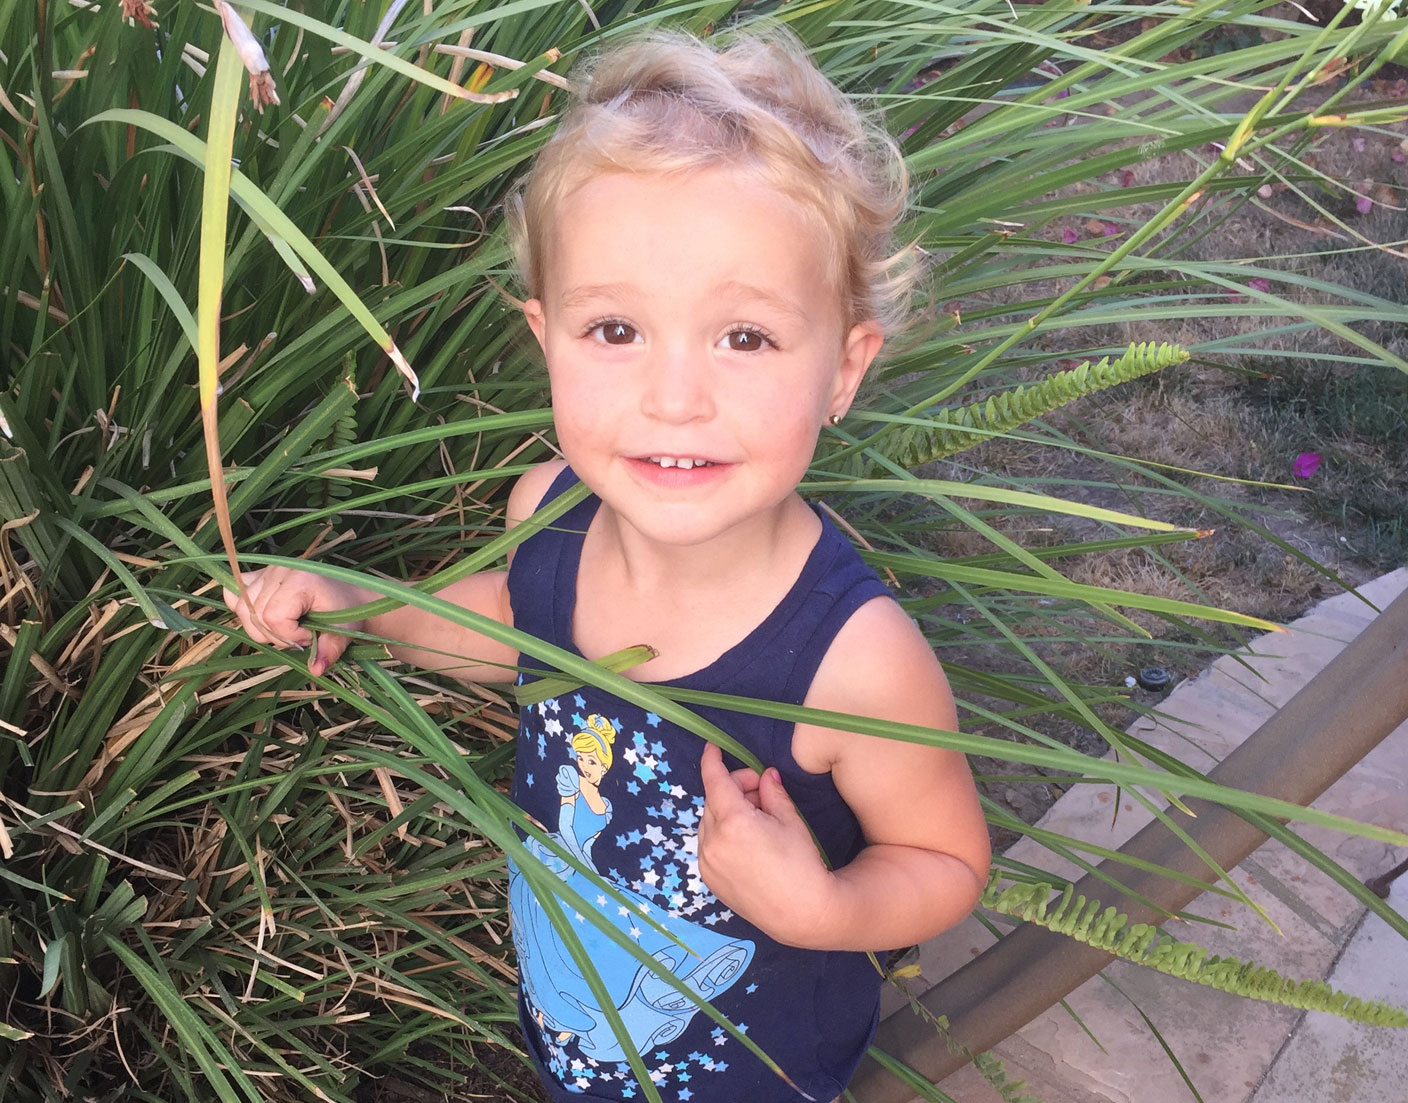 Child With Pampas Grass 4 2017